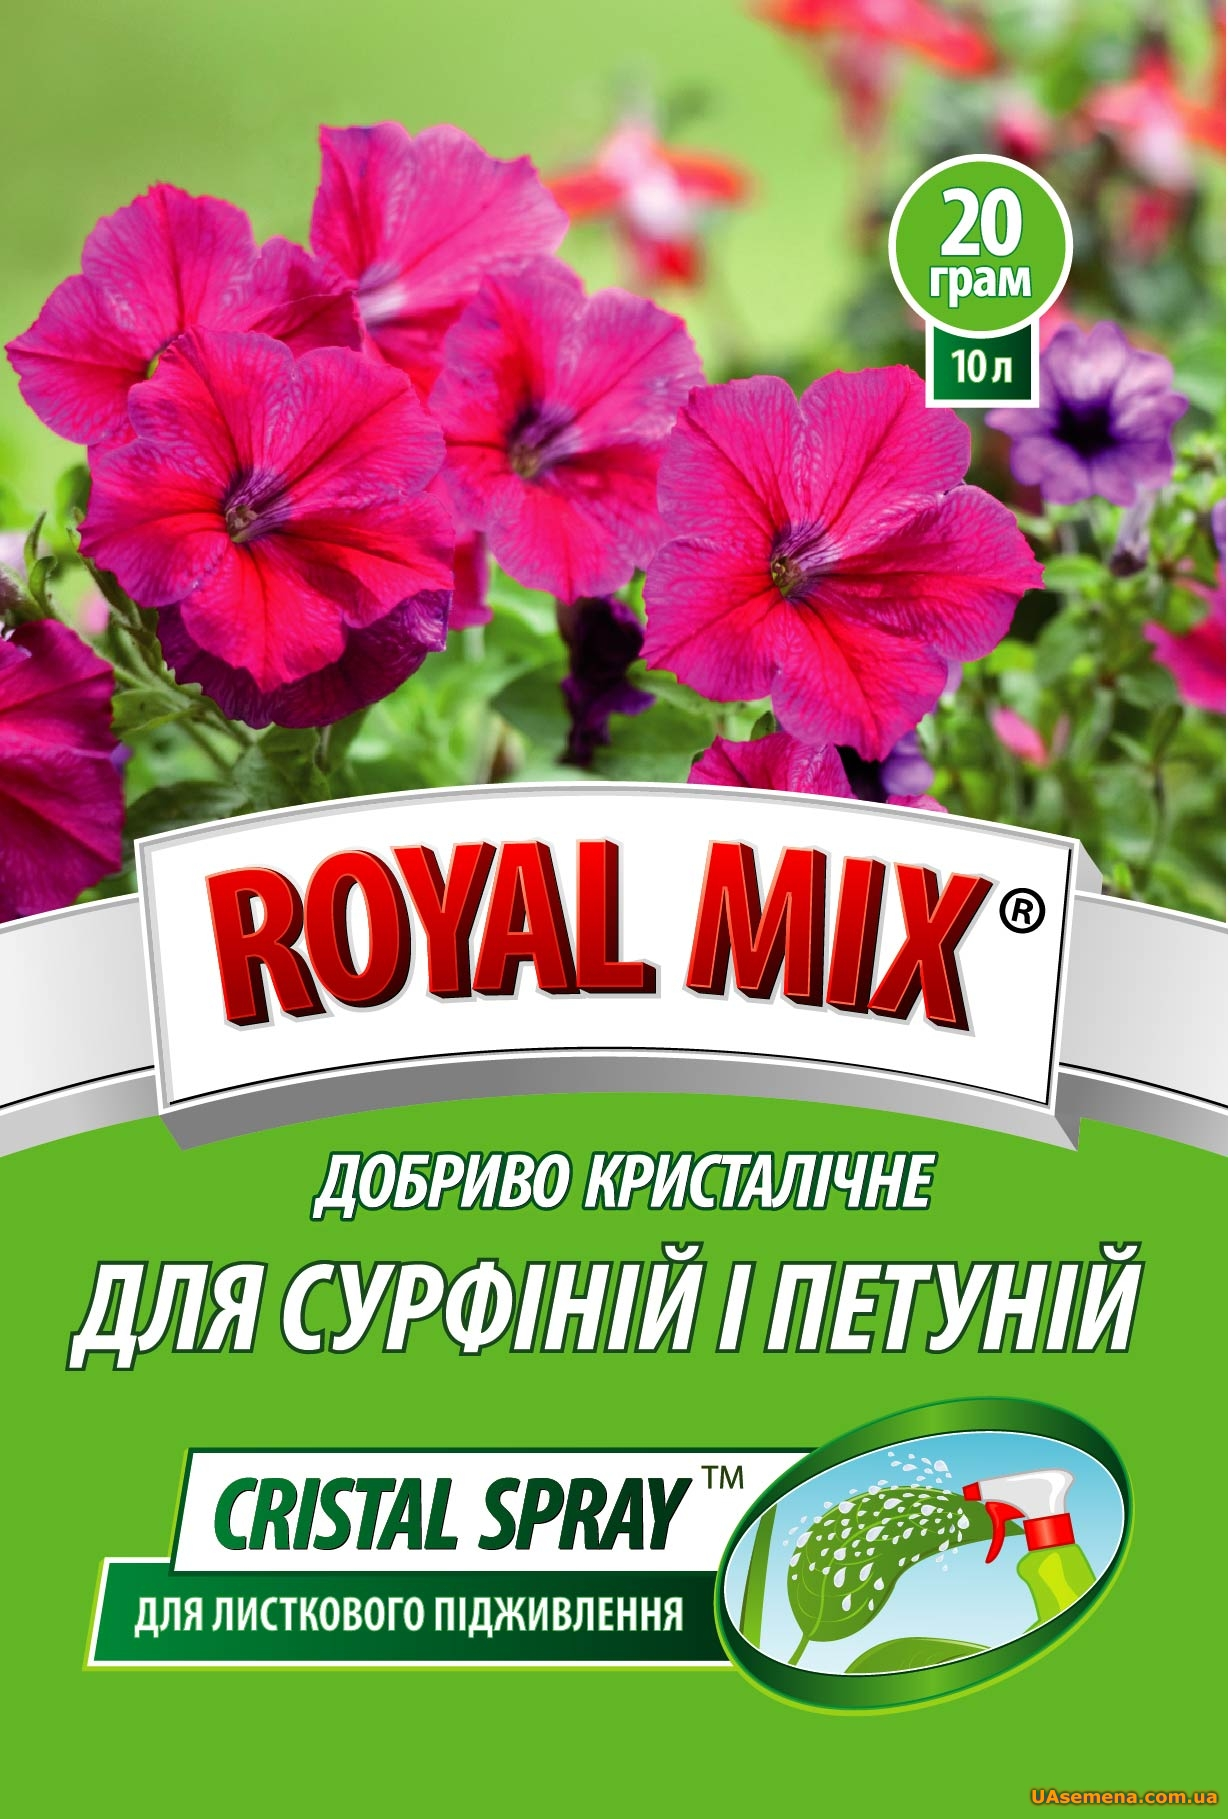 "��������� - �����. ""ROYAL MIX - CRISTAL SPRAY"" ��� �������� � �������, 20 �"